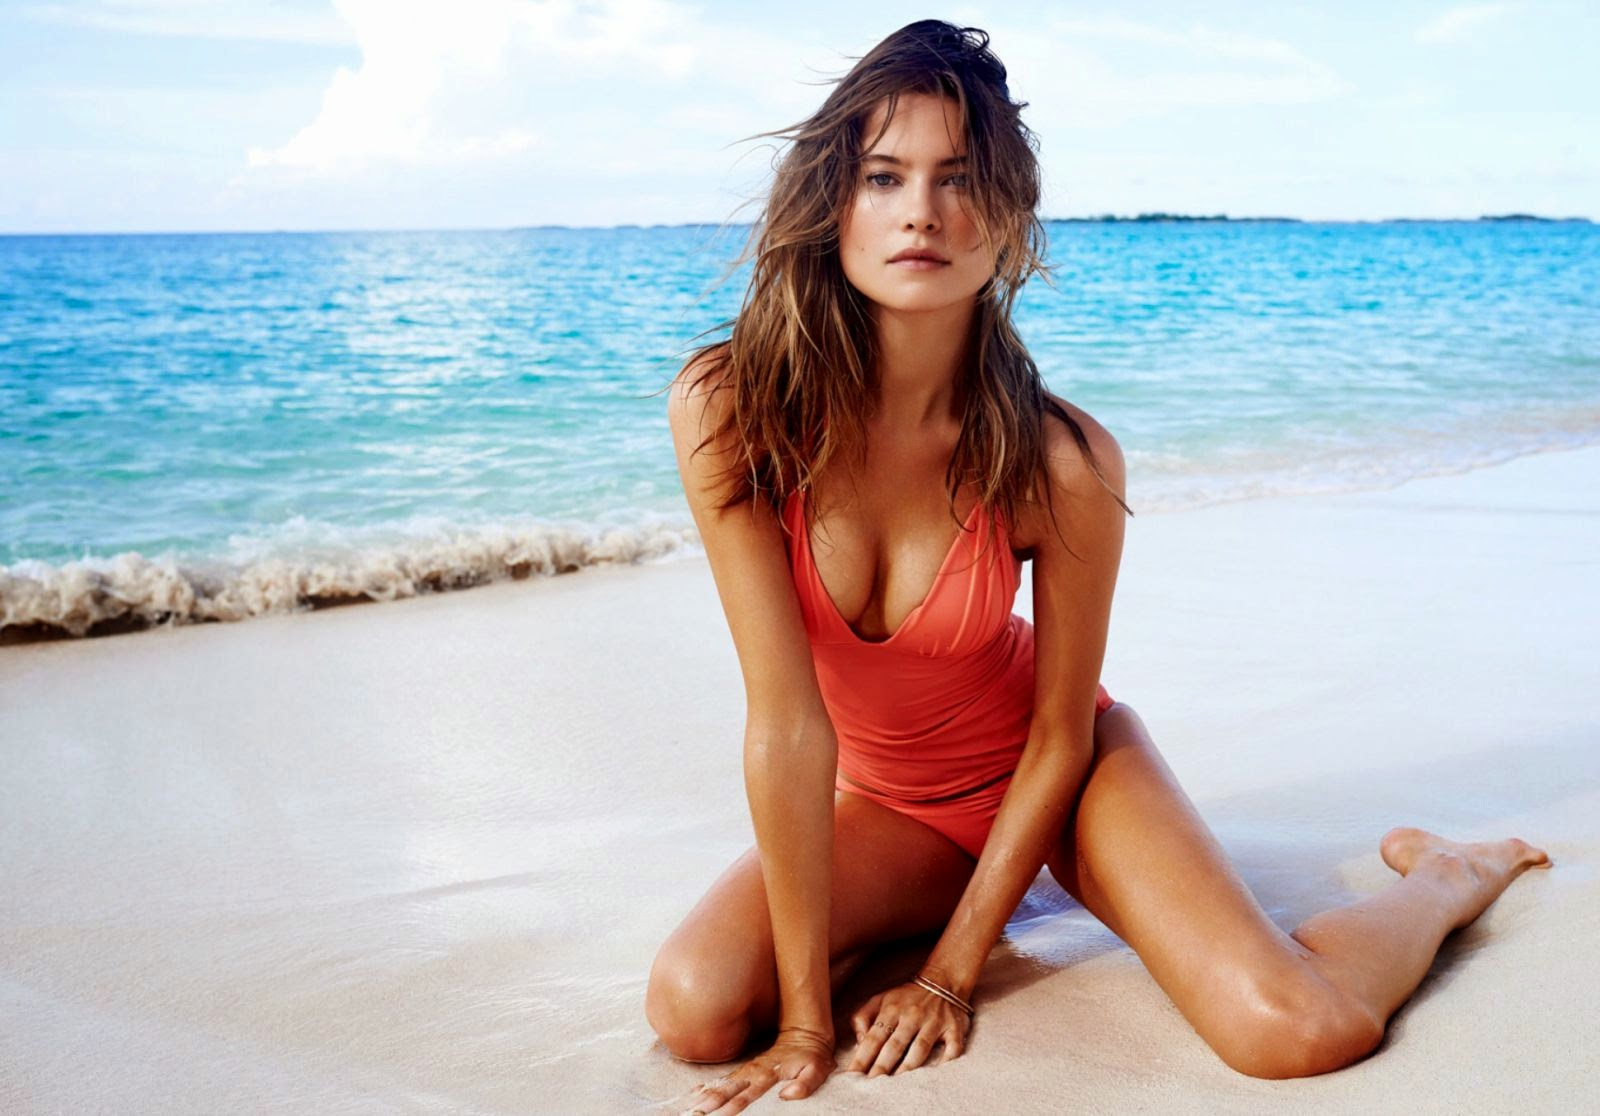 Behati Prinsloo sizzles for the Paola and Murray Swimwear Lookbook 2015